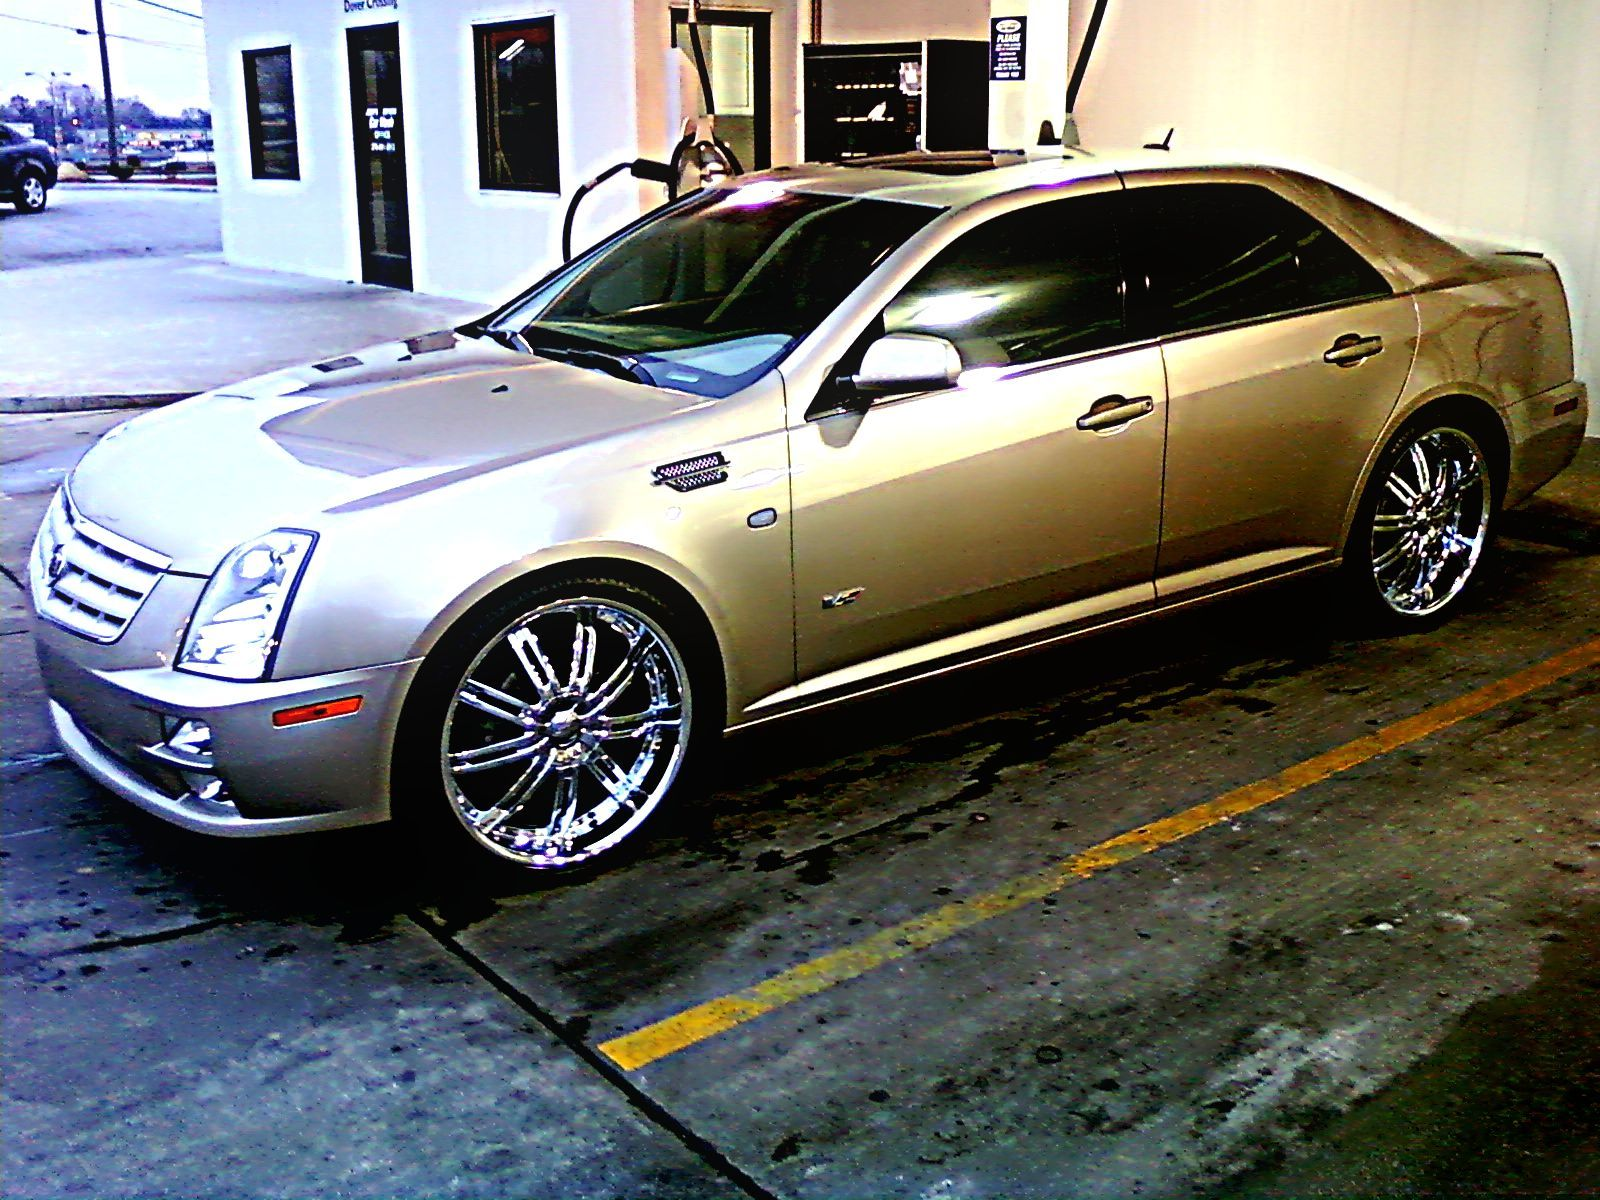 Volkswagen Of Clarksville >> 931snagg 2005 Cadillac STS Specs, Photos, Modification ...